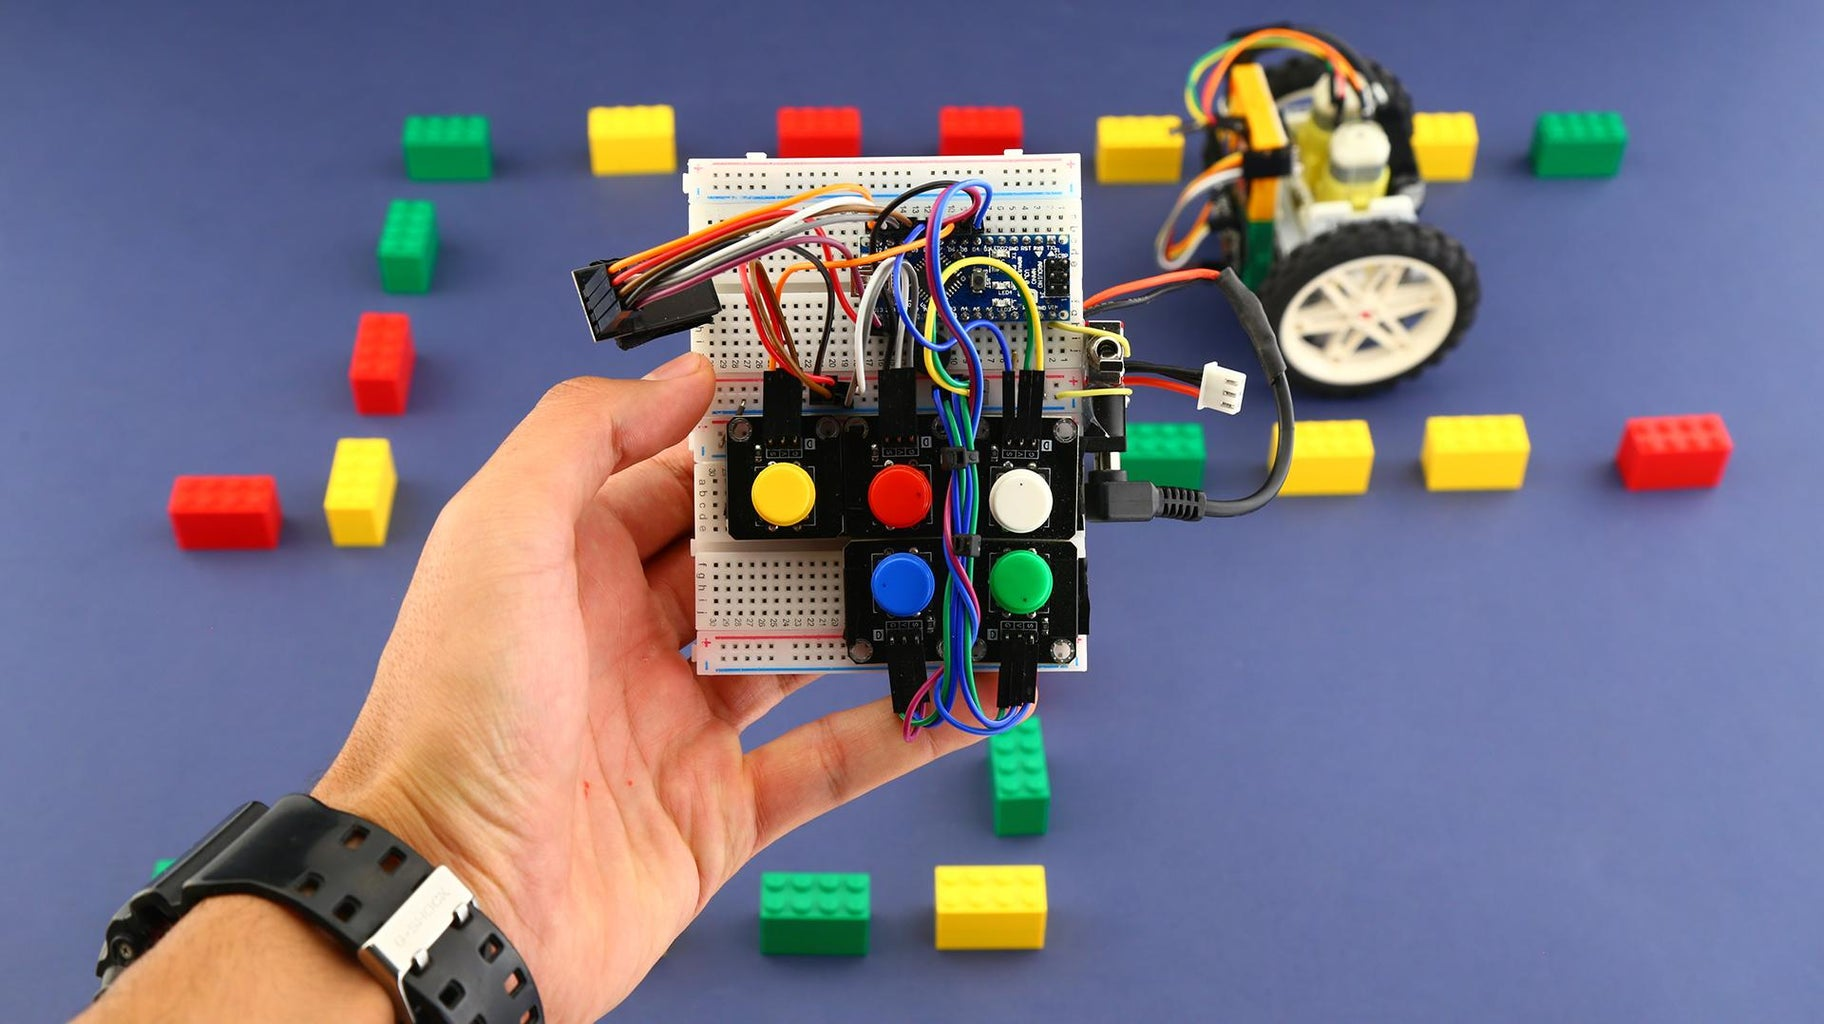 General View of the Tangible Coding Robot